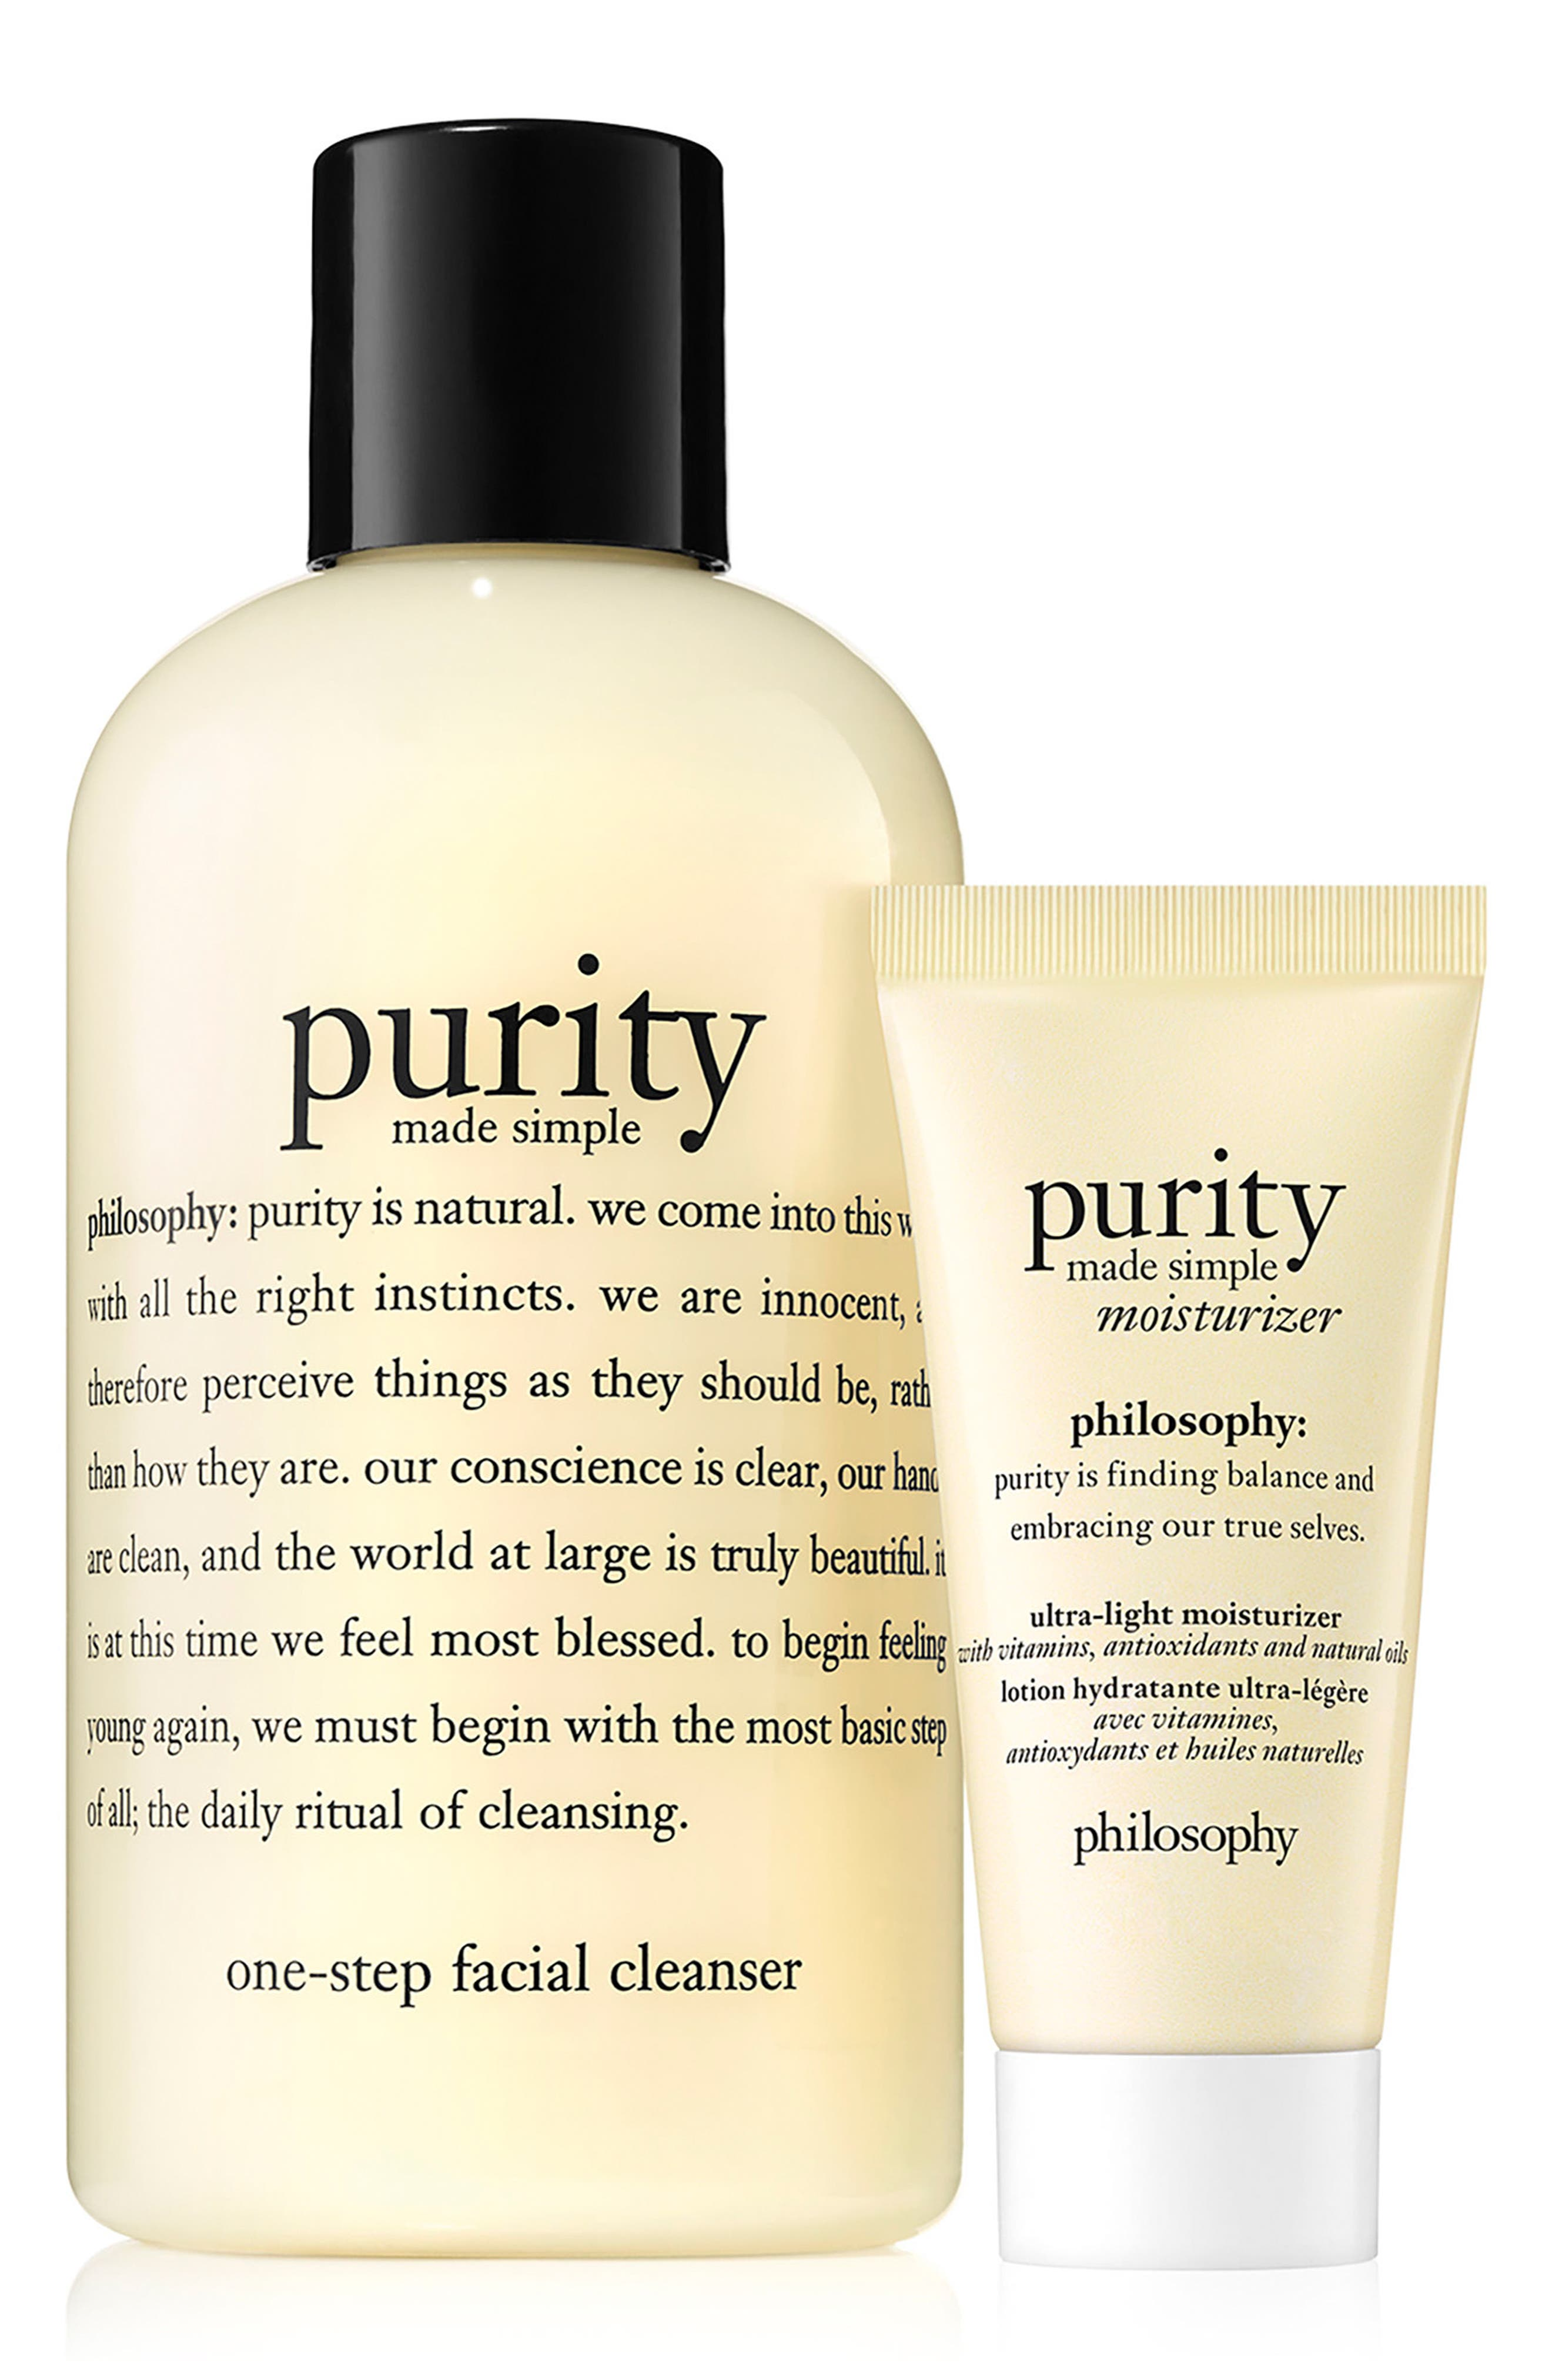 philosophy purity made simple cleanser & moisturizer duo ($29 Value)